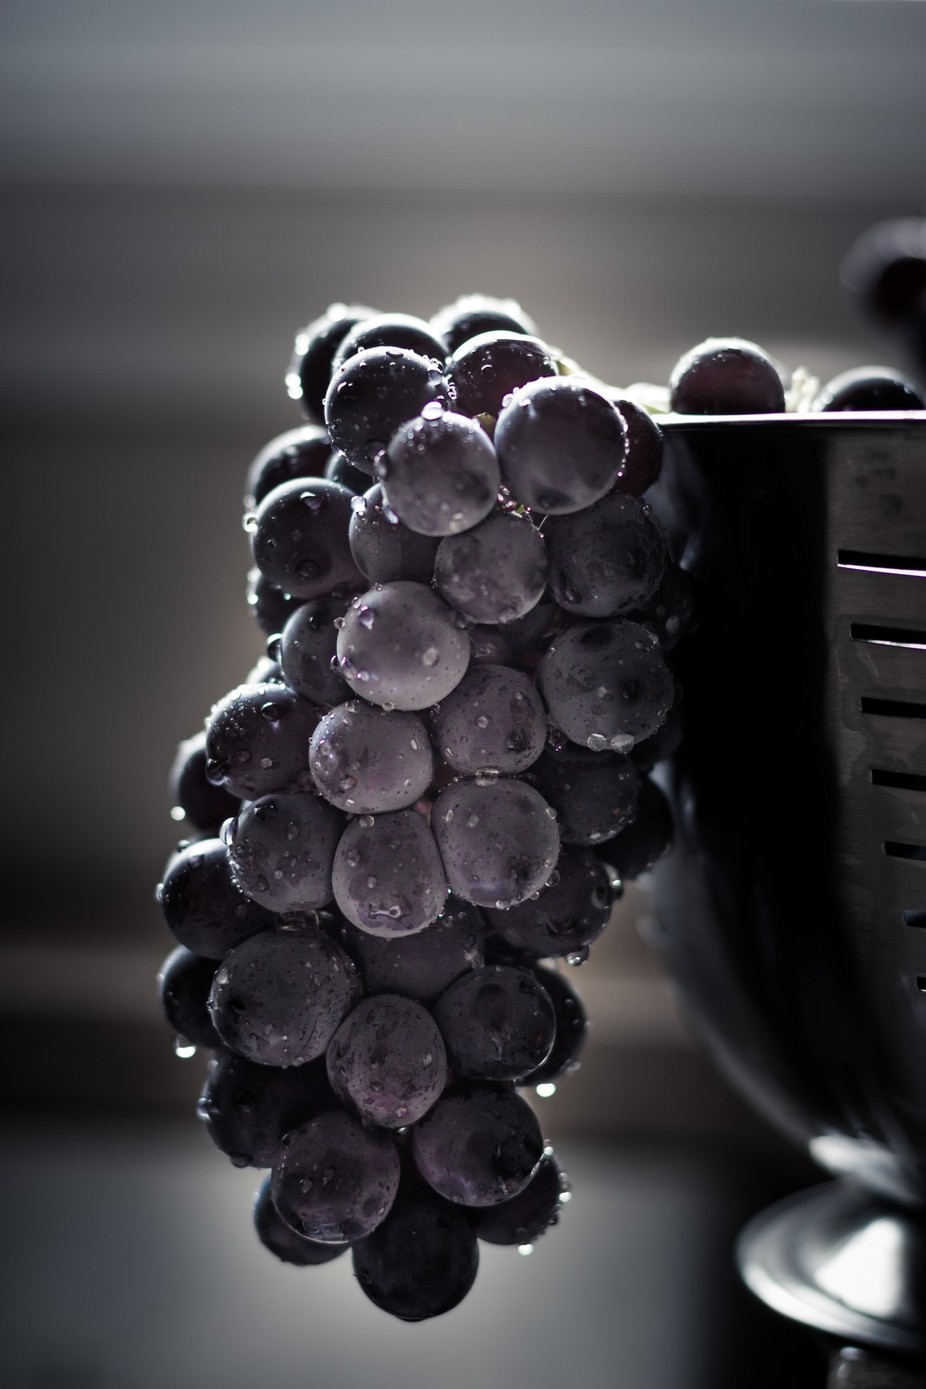 Washed Grapes by ThroughJsLens - Looks Delicious Photo Contest